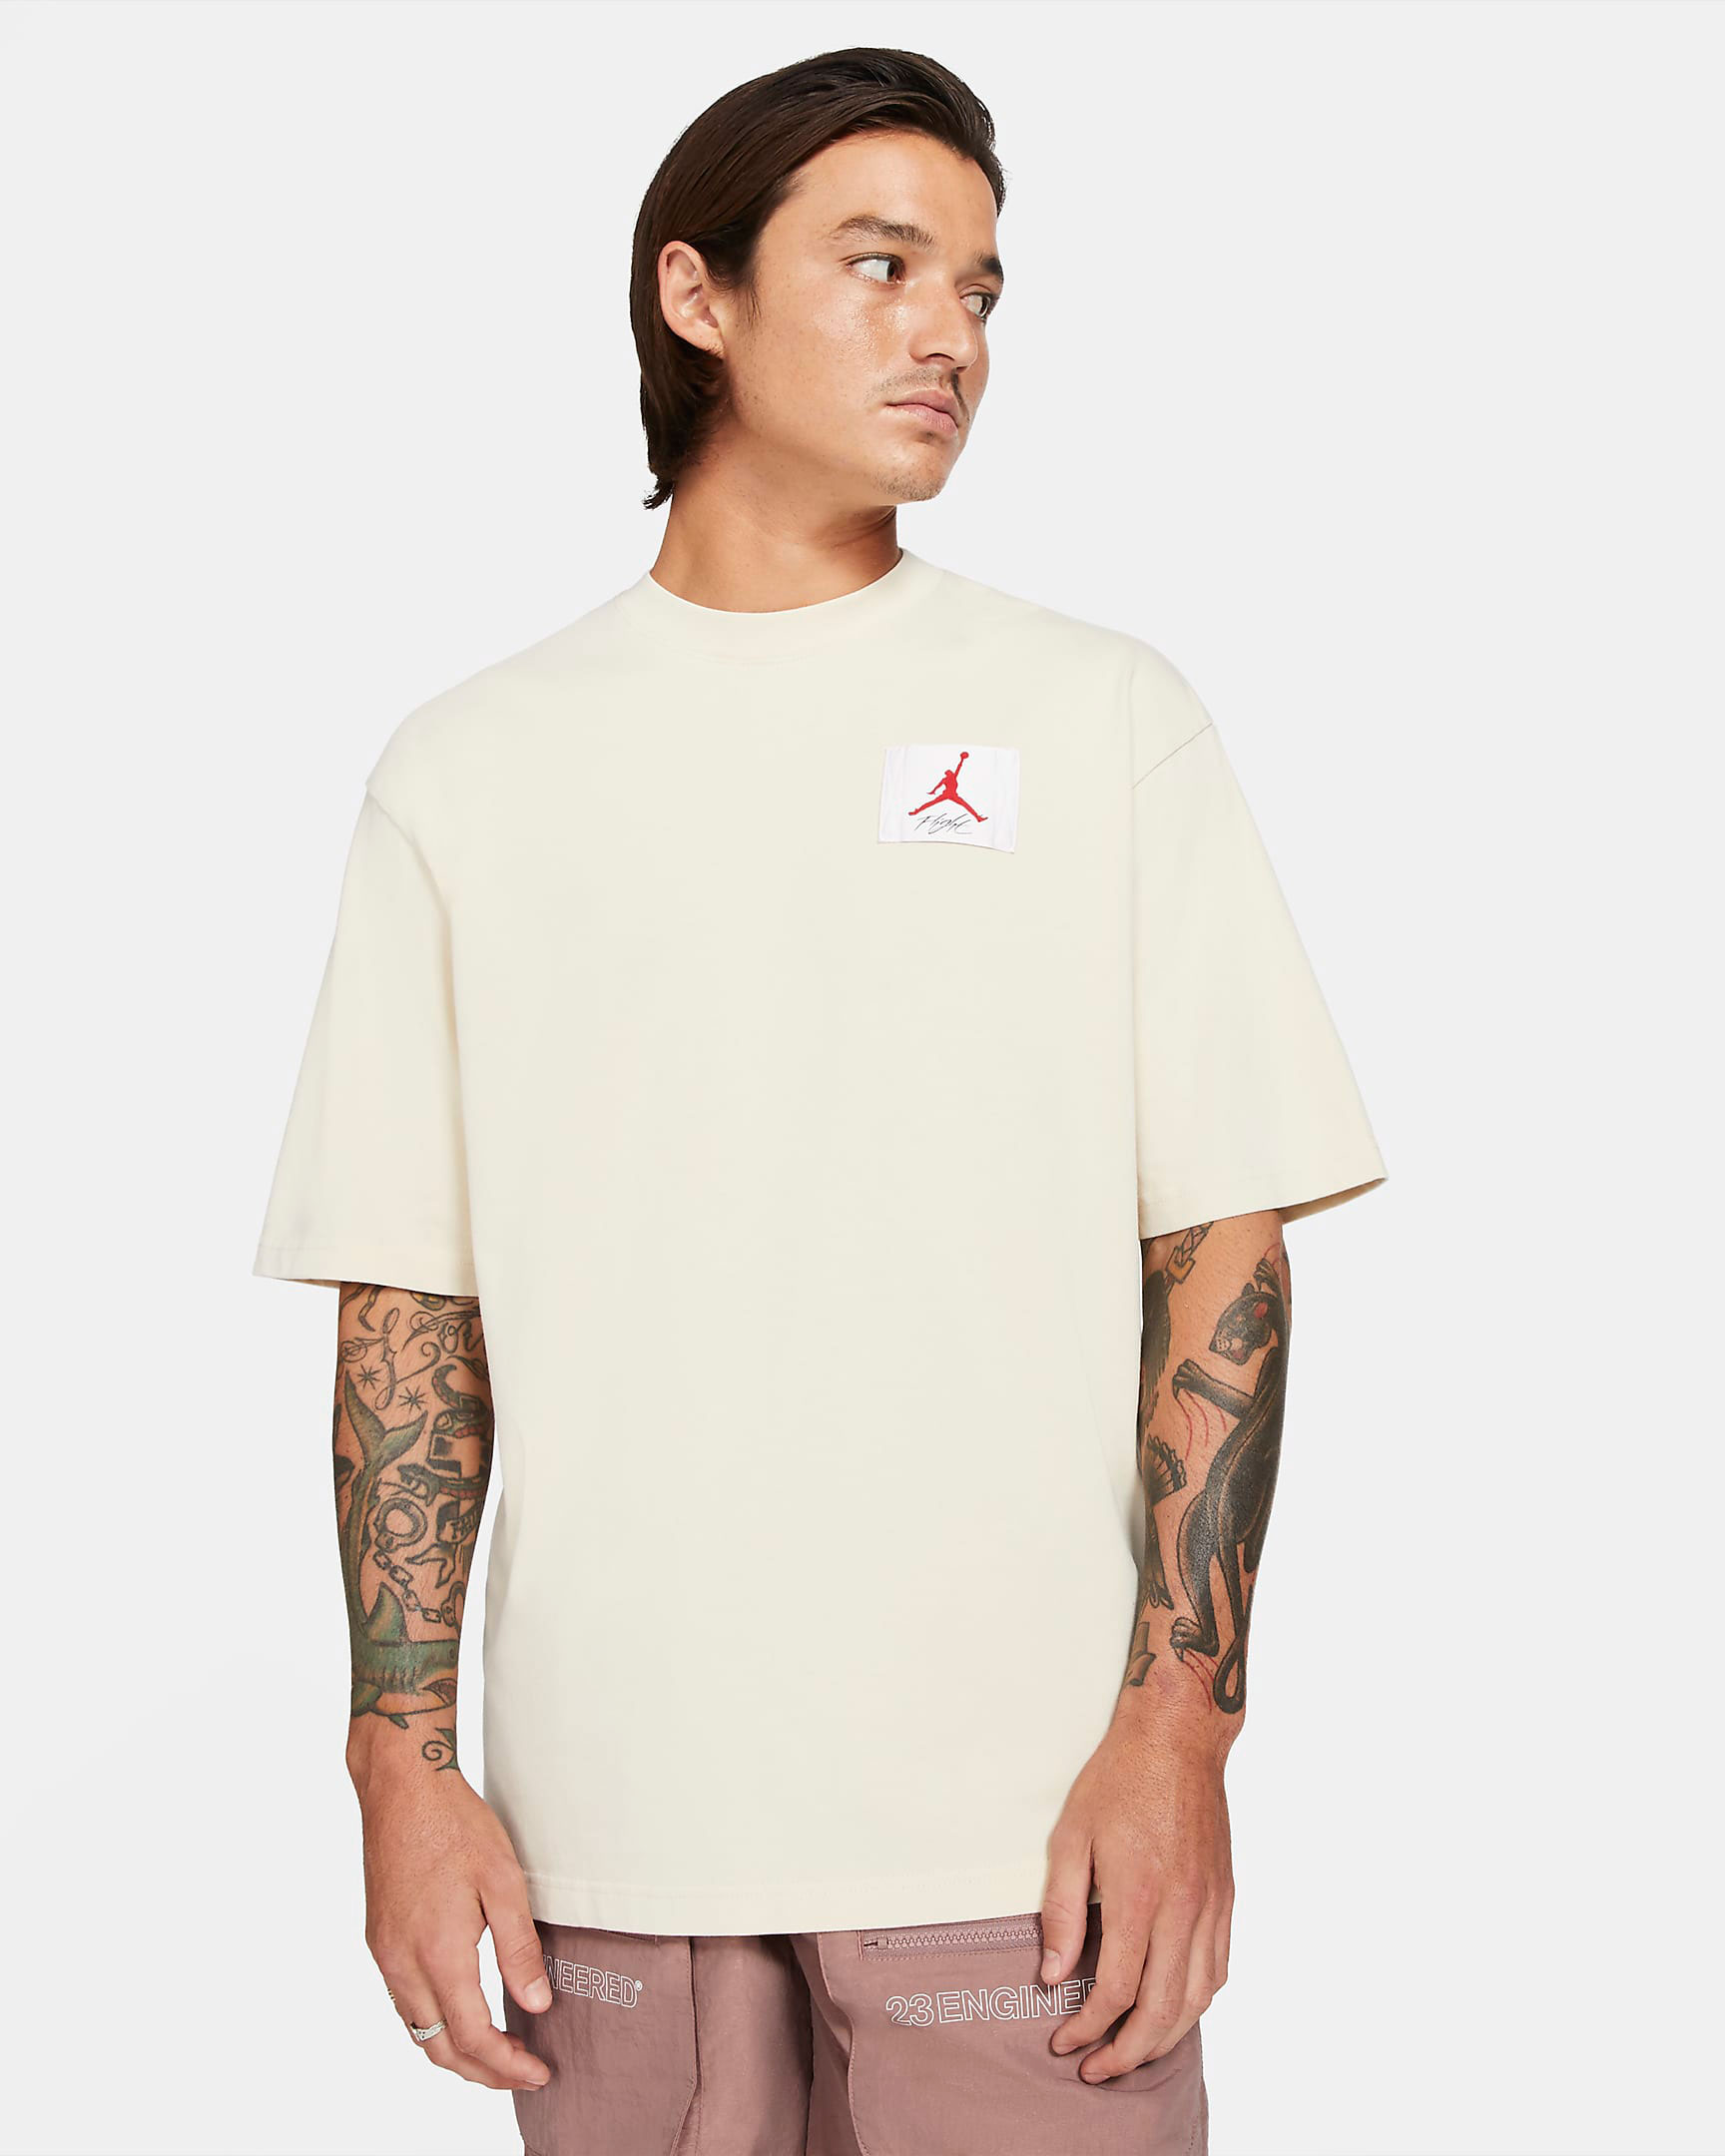 jordan-off-white-sail-shirt-1